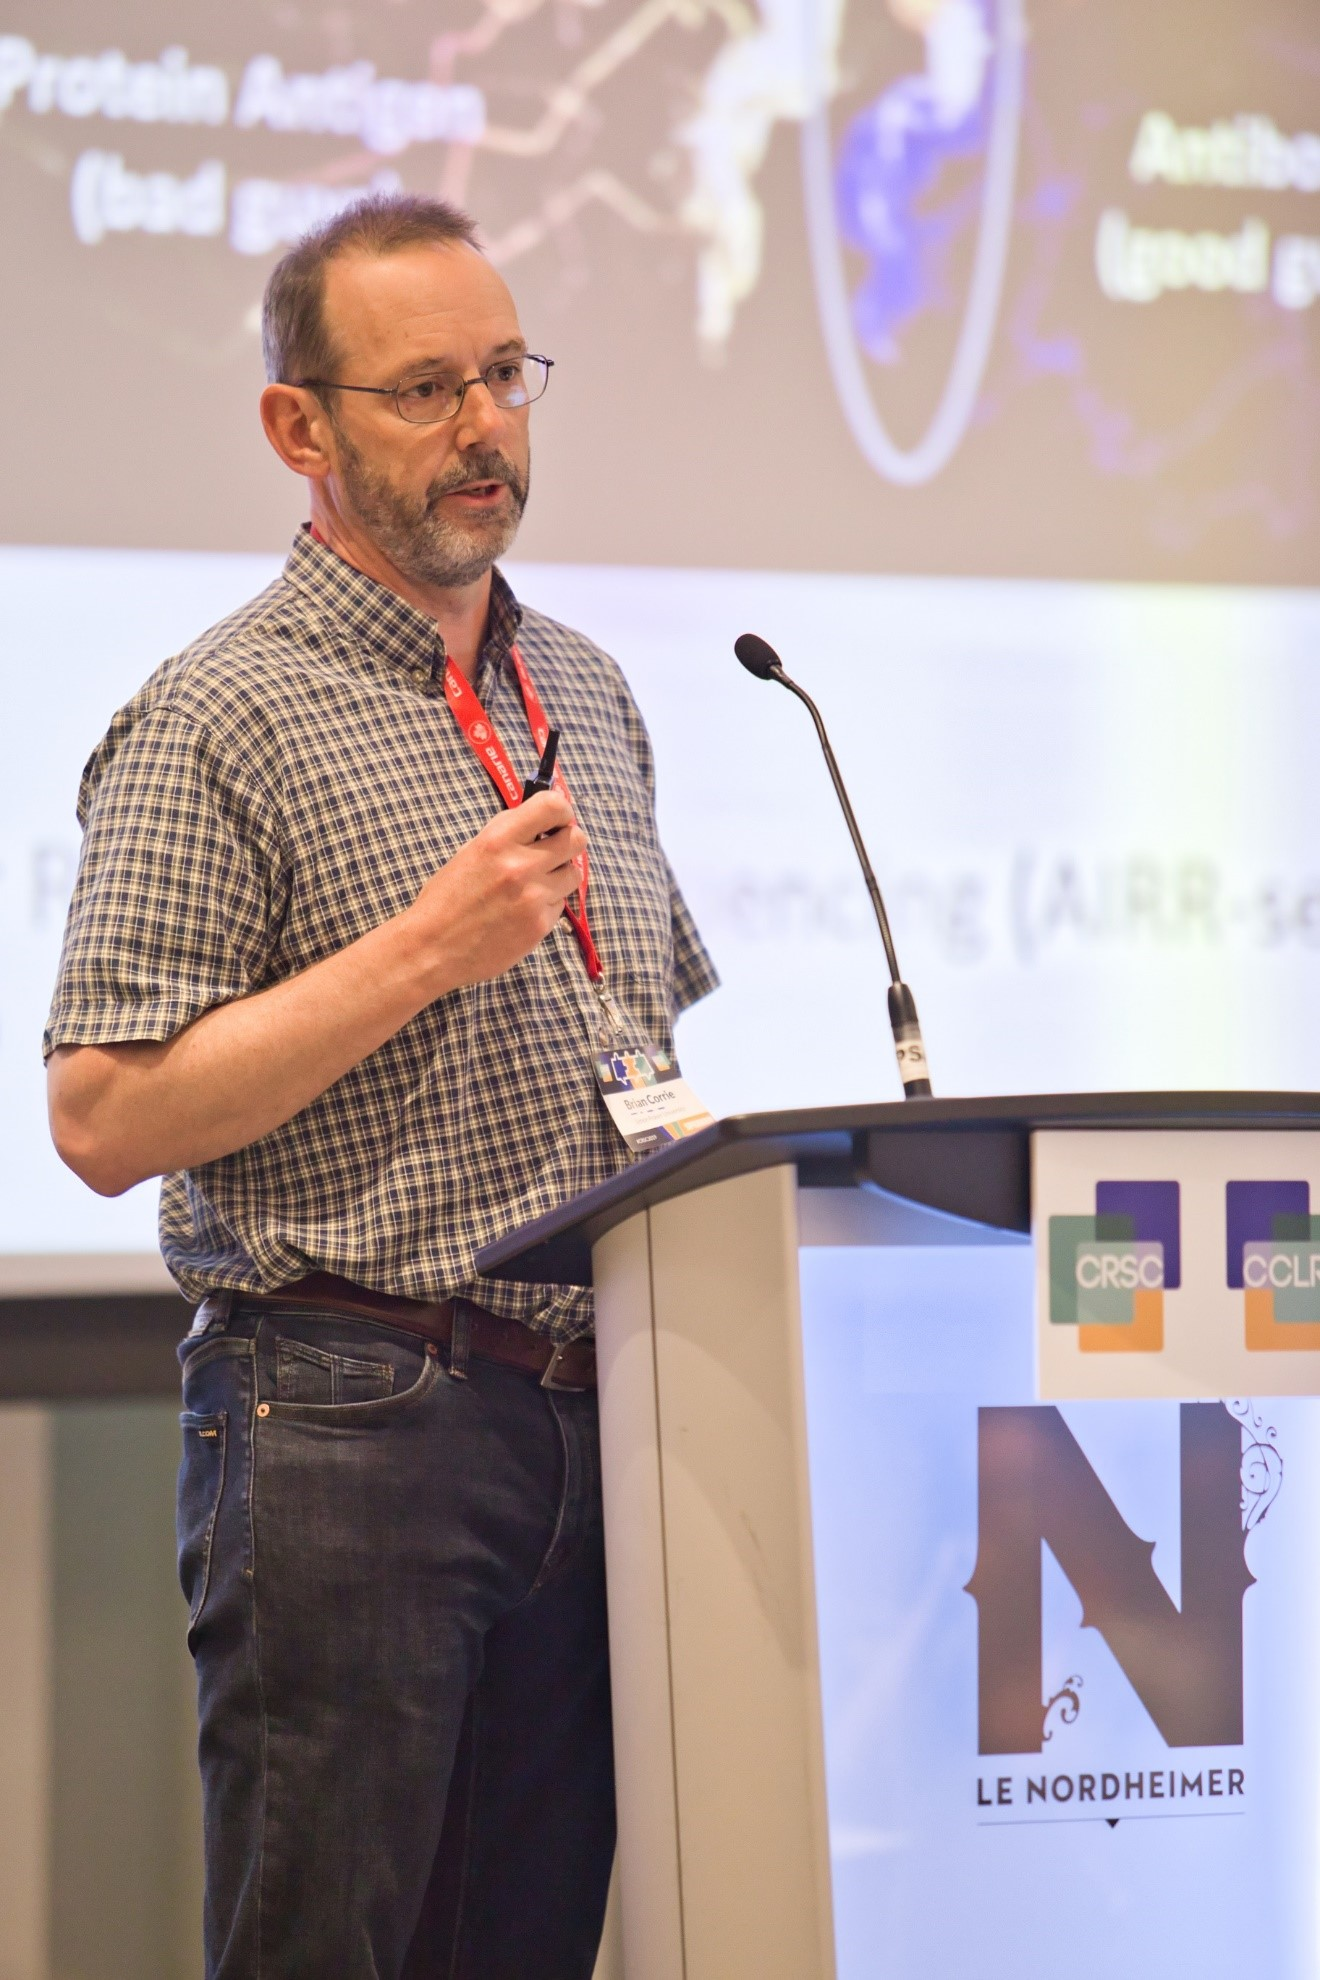 iReceptor Plus at Canadian Research Software Conference